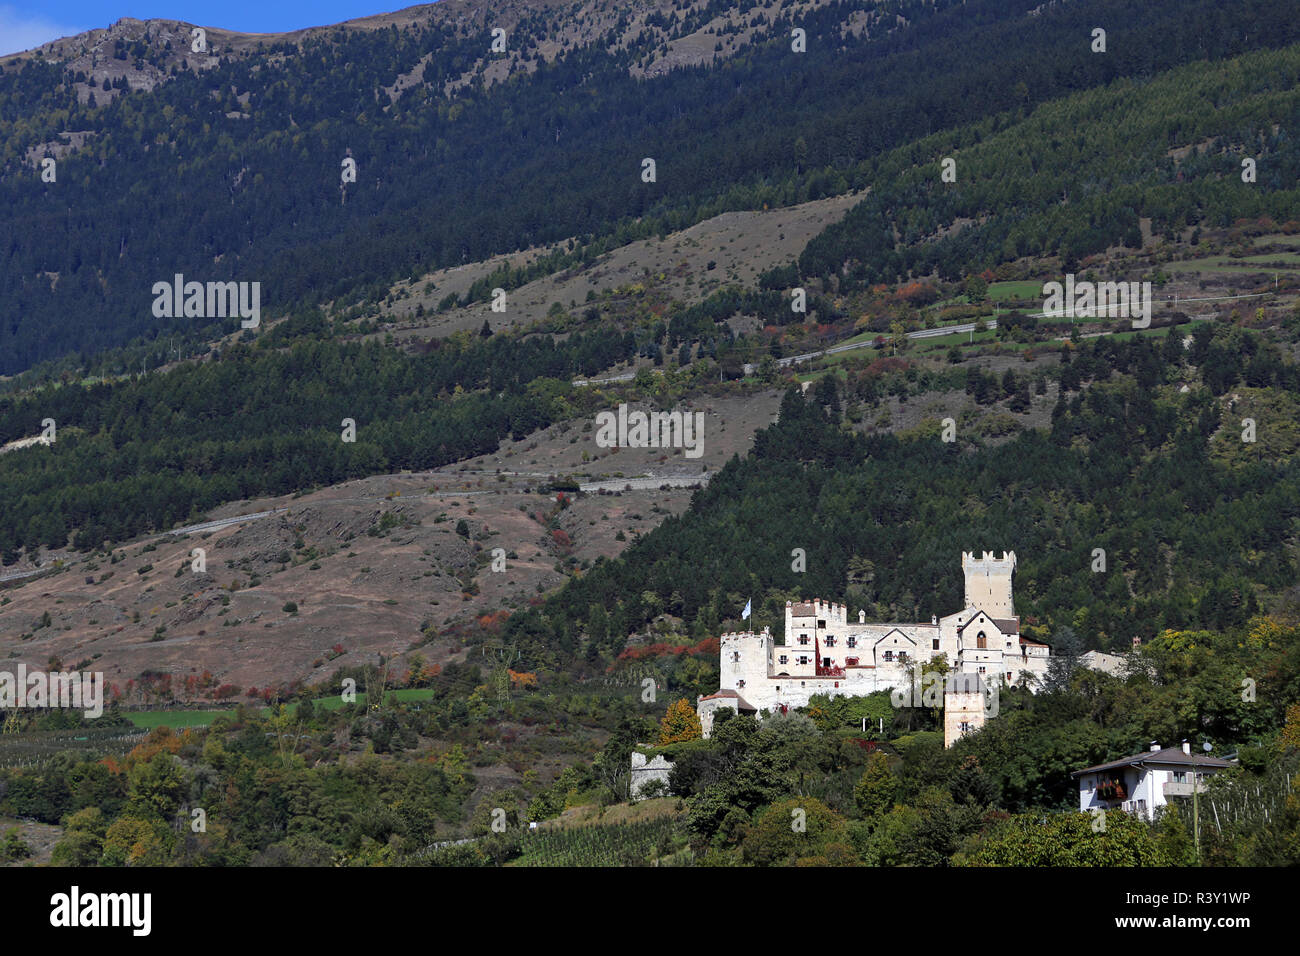 coira castel coira or at schlunders in south tyrol Stock Photo